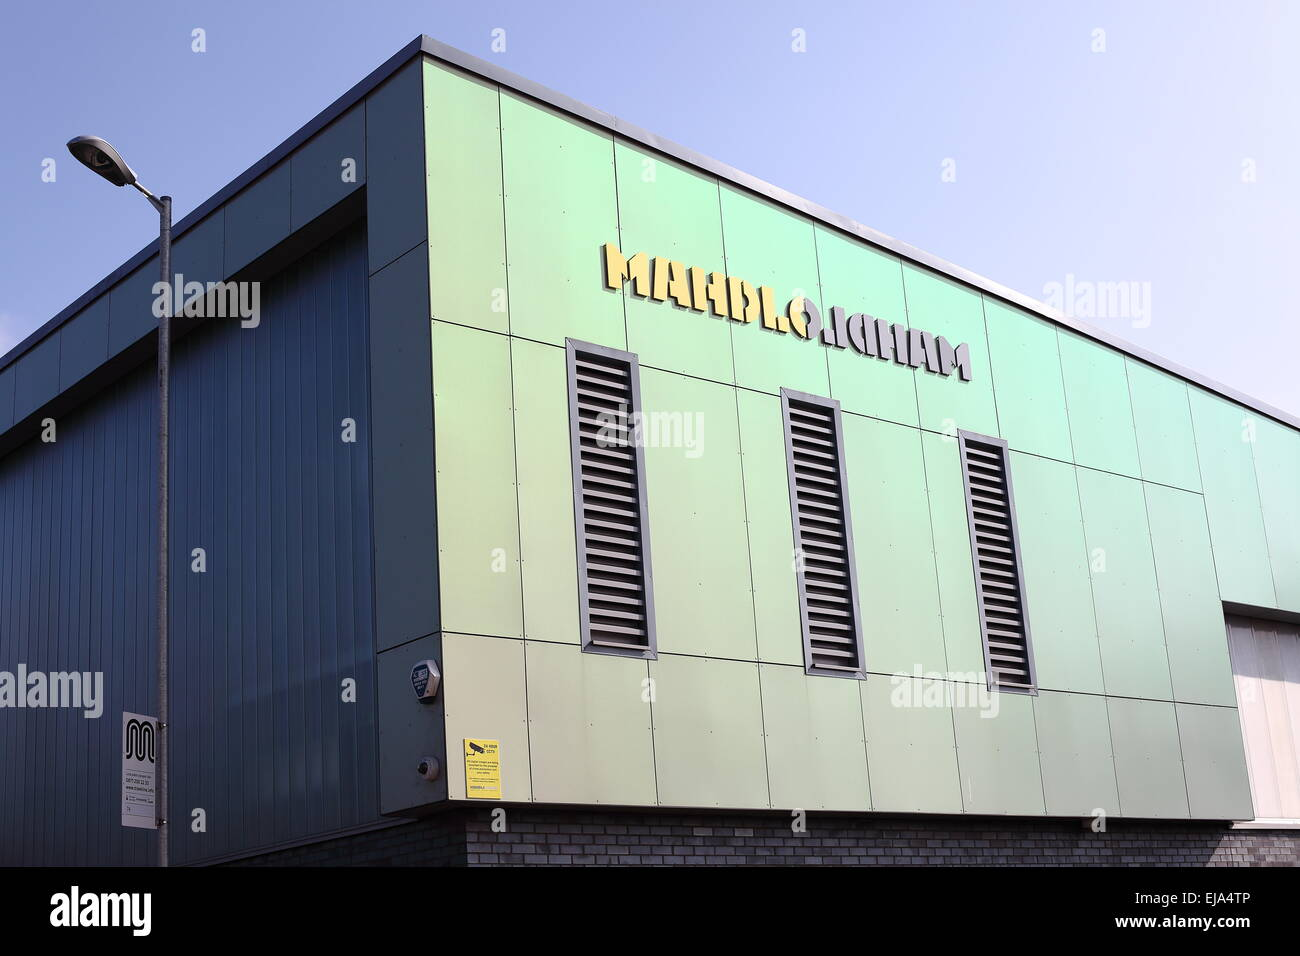 An exterior view of the Mahdlo Youth Centre in Oldham, Lancashire UK - Stock Image